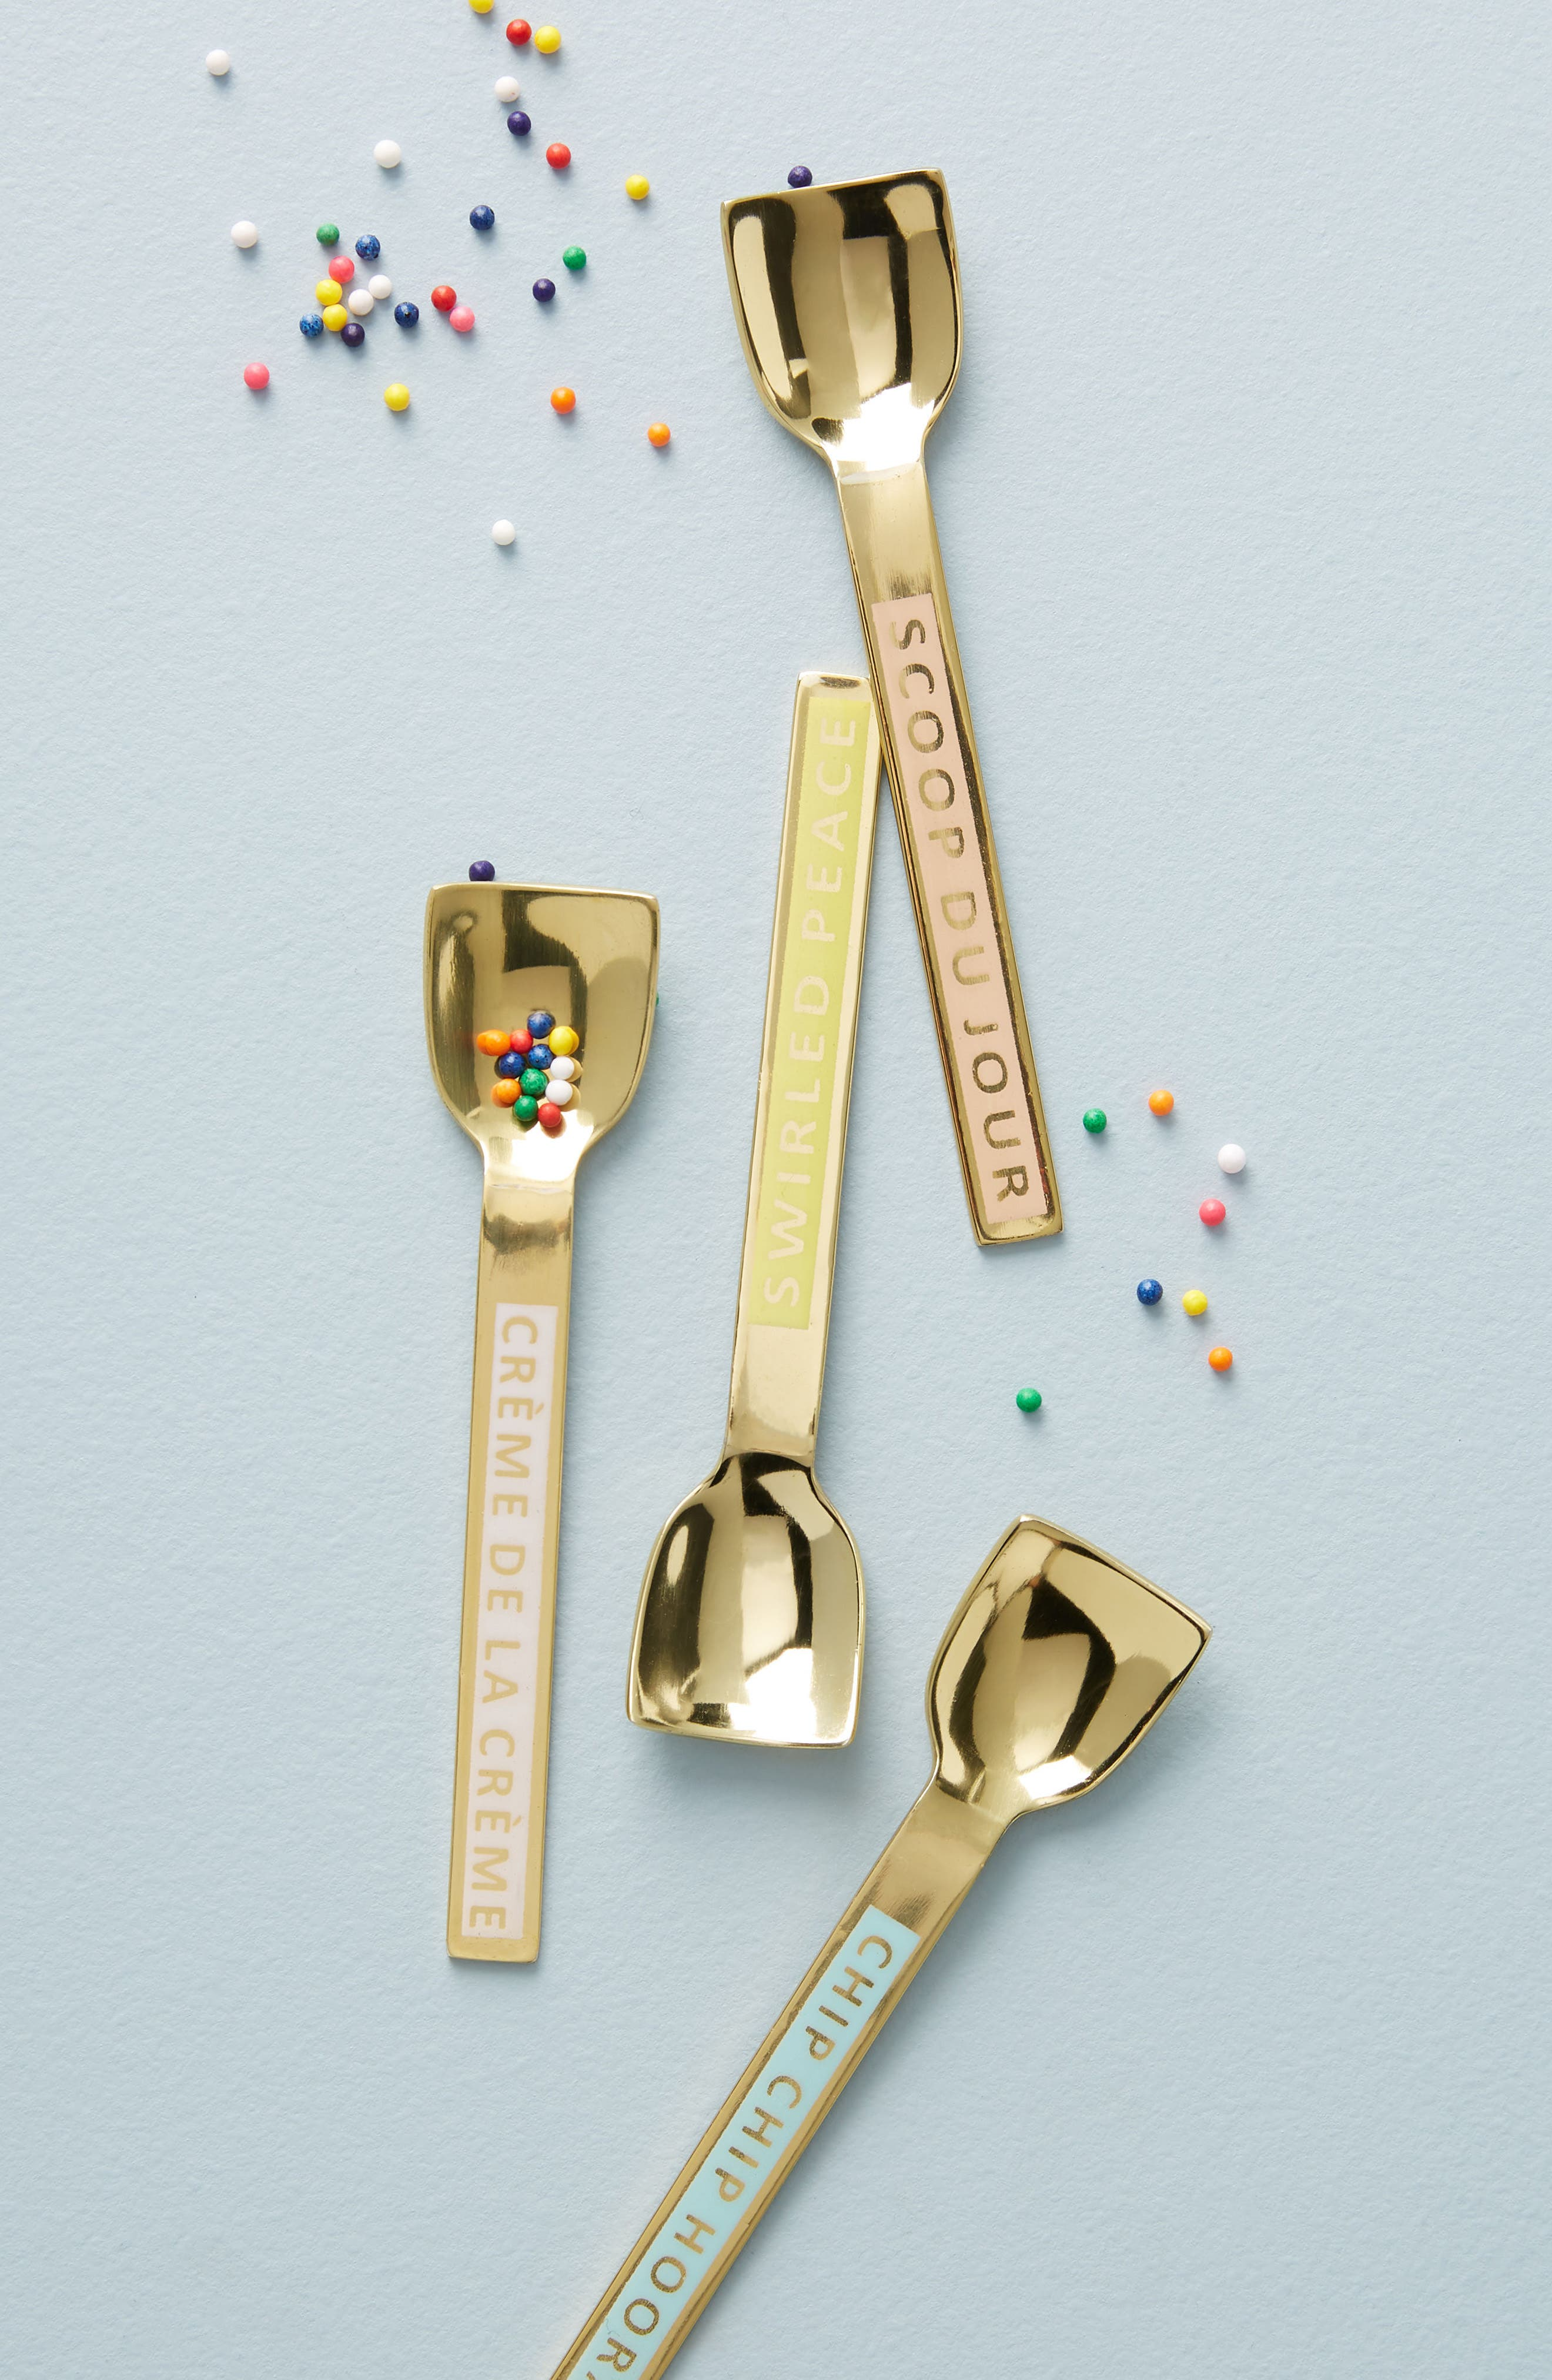 Sweet Treat Set of 4 Ice Cream Spoons,                             Main thumbnail 1, color,                             Gold